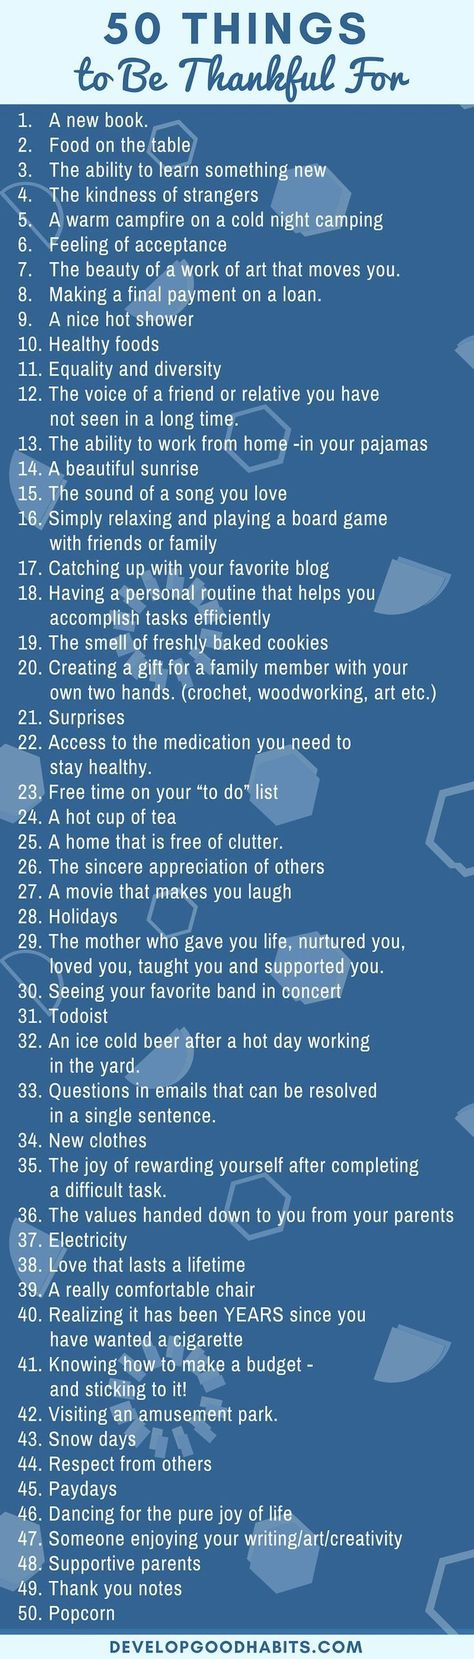 What are you thankful for? This list is a collection of 5o things you could be thankful for. Check out the entire list of 200+ things to think about and be grateful for. #thanks #givethanks #thankfulness #thankful #grateful #gratitude #grateful #positivepsychology #mentalealth